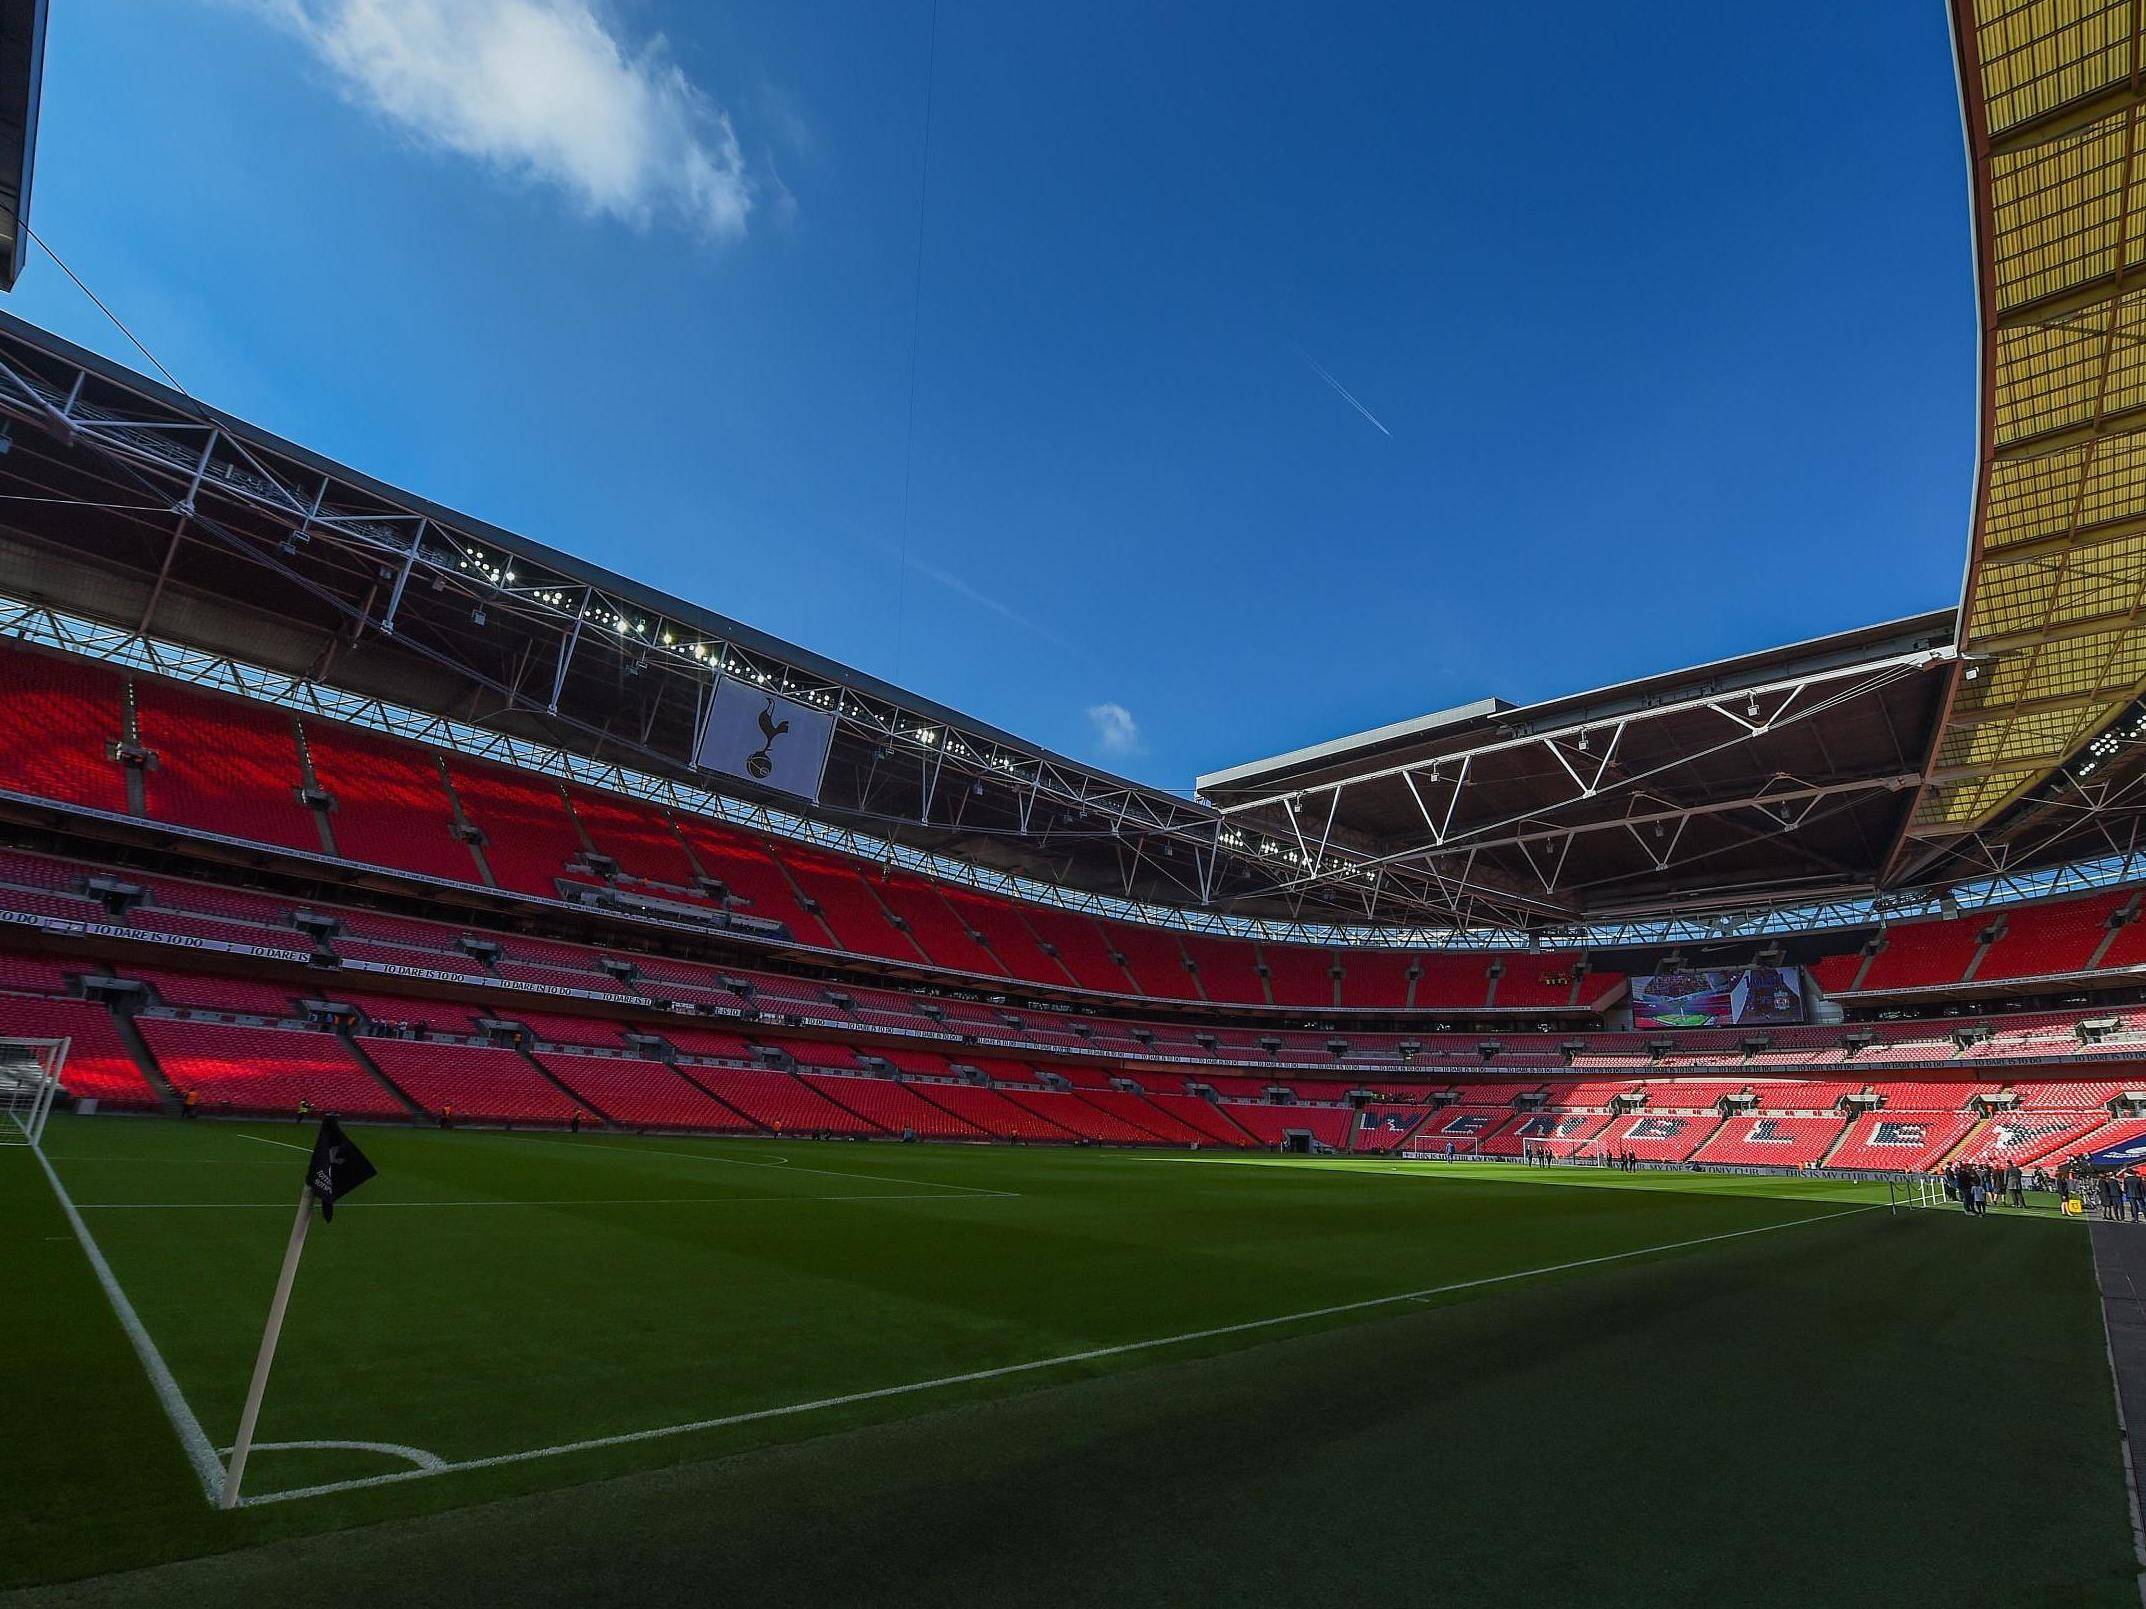 a83eb8ce06a1 Wembley Stadium - latest news, breaking stories and comment - The ...